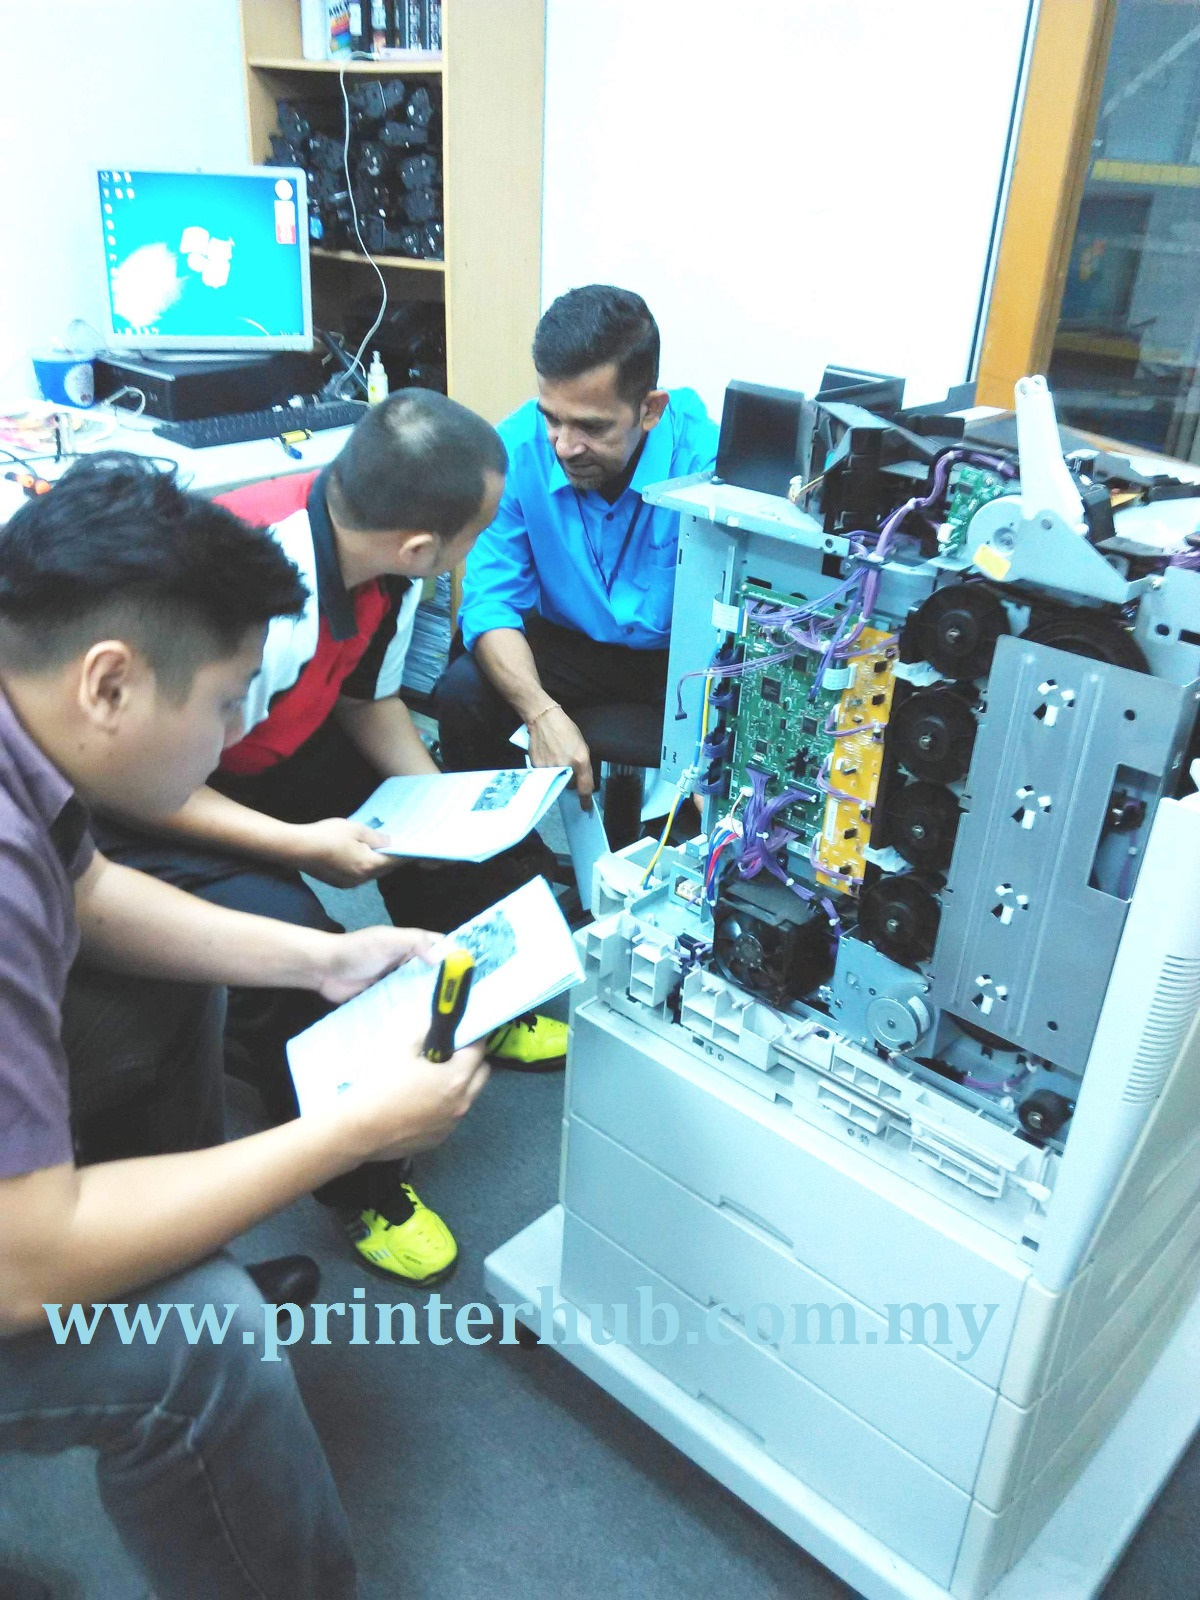 Training printer repair, logo